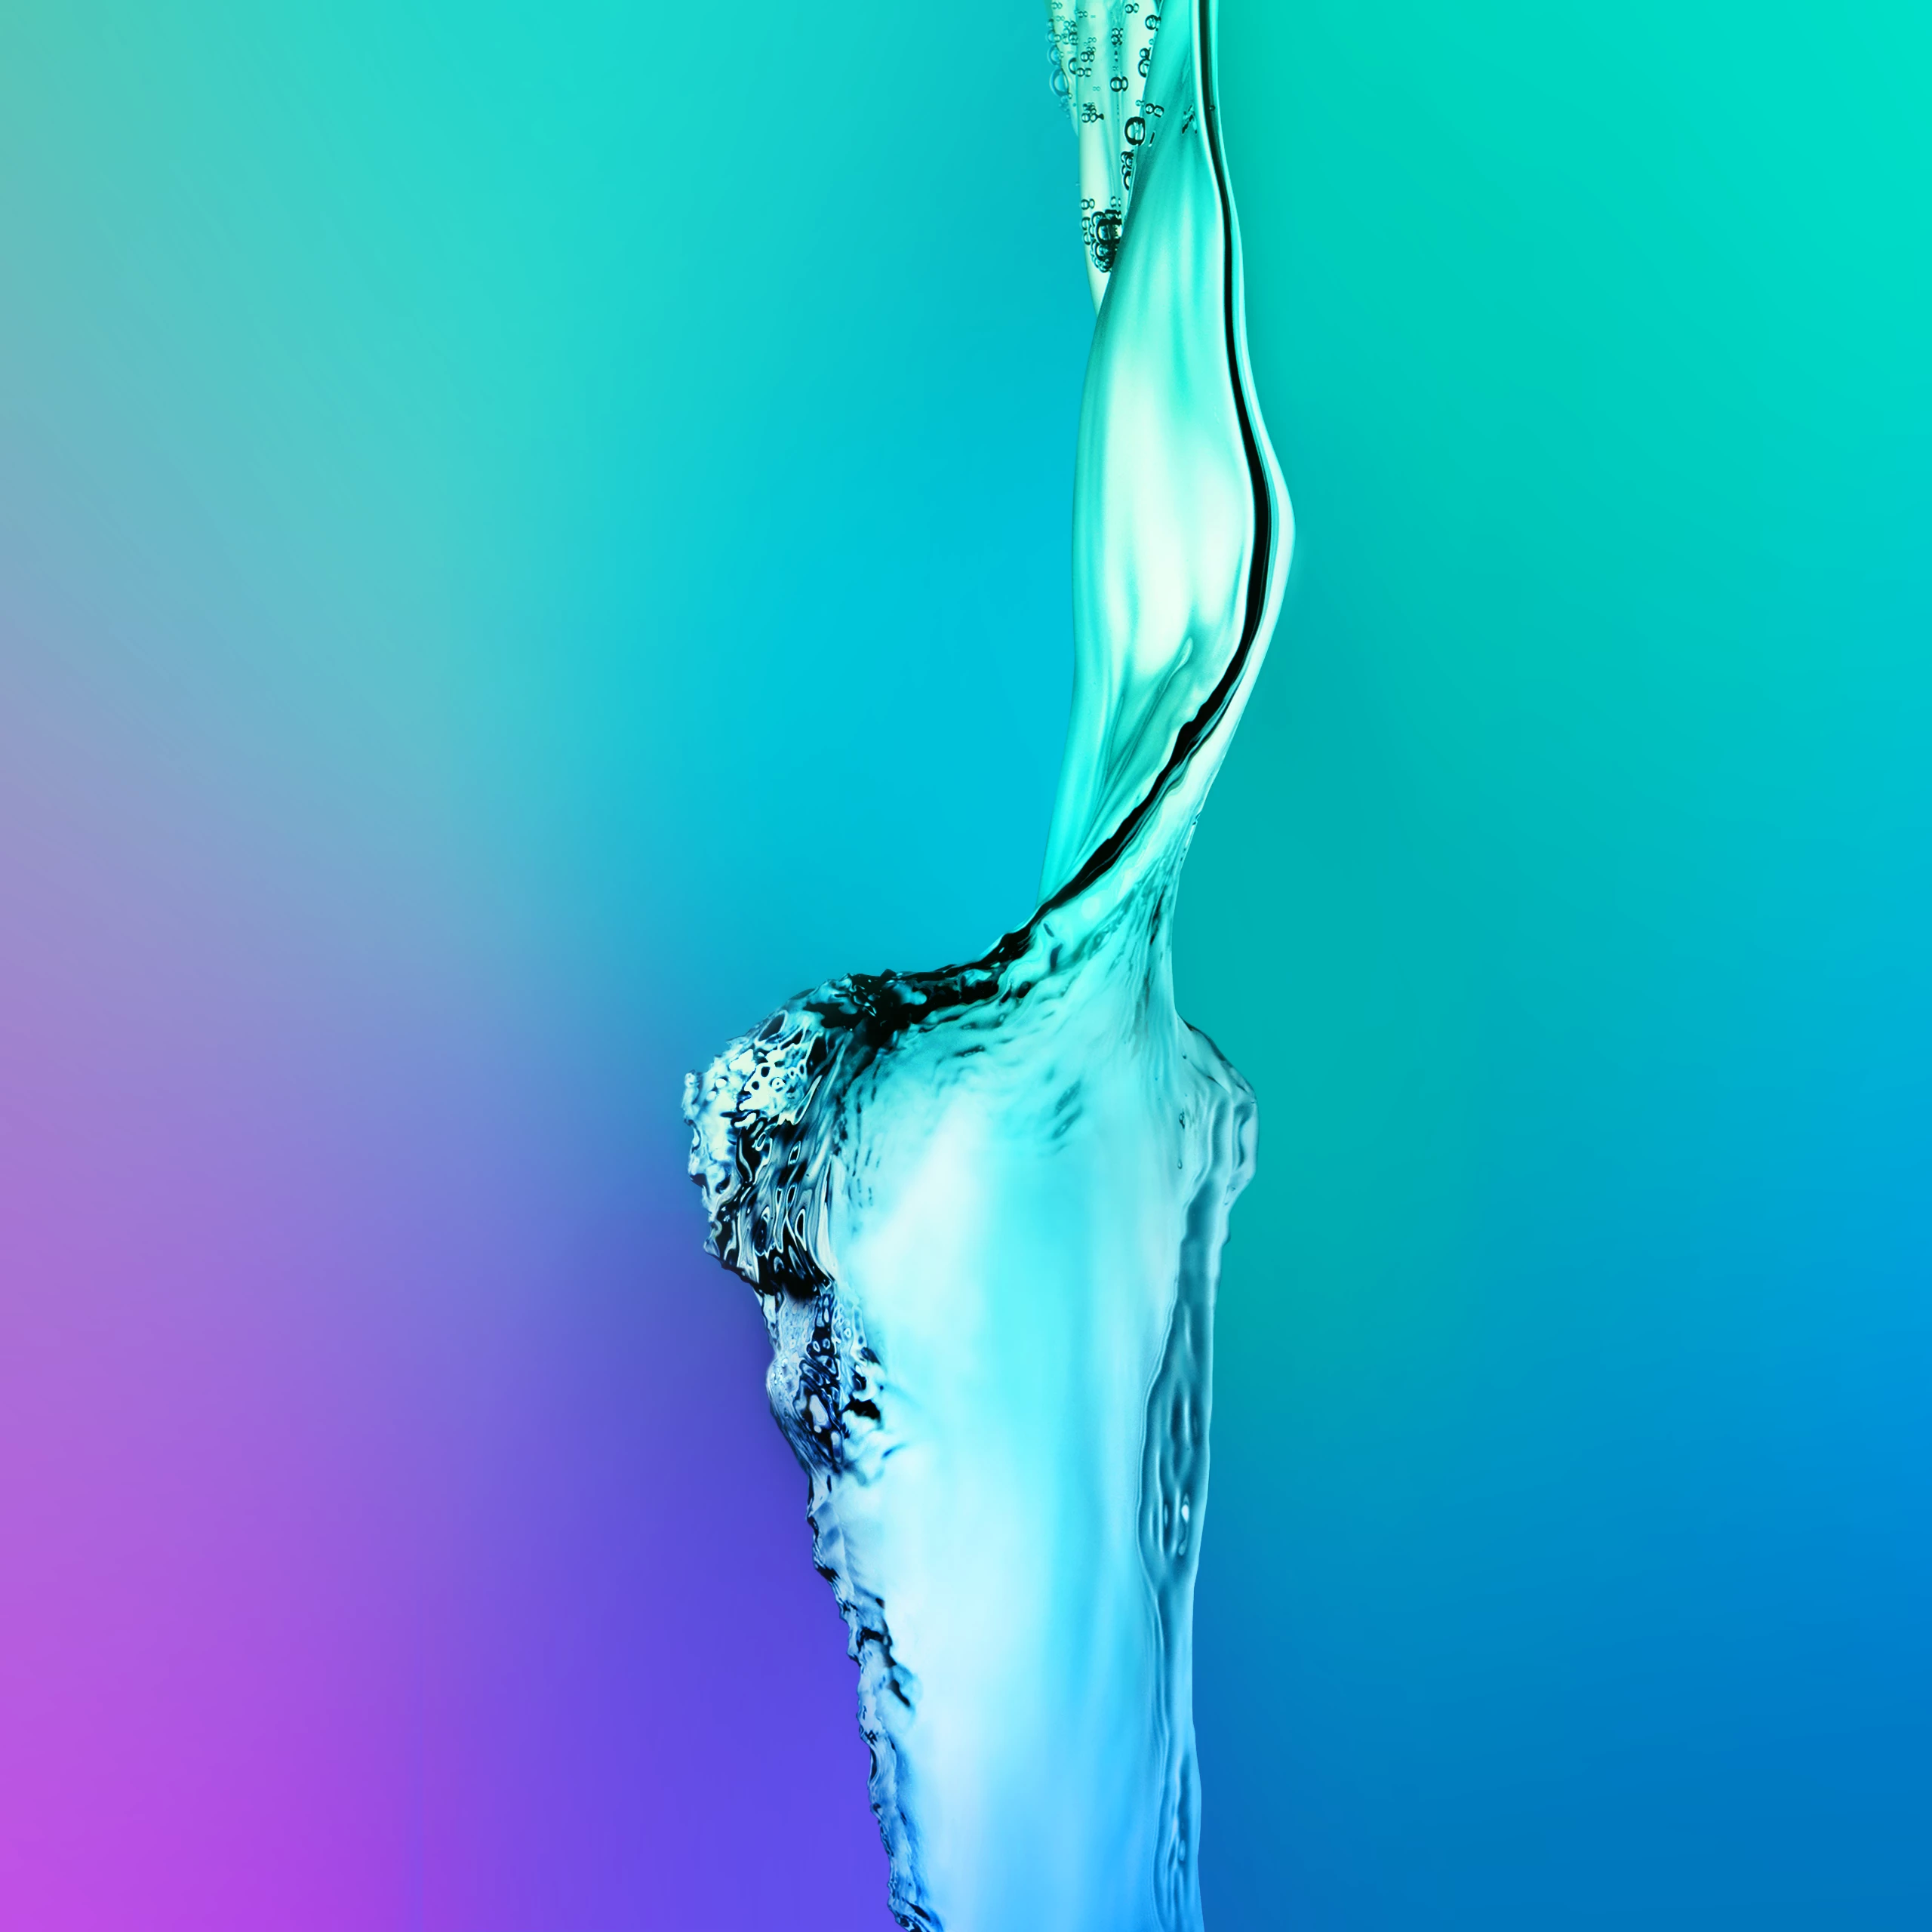 Galaxy Note 5 Wallpapers 03